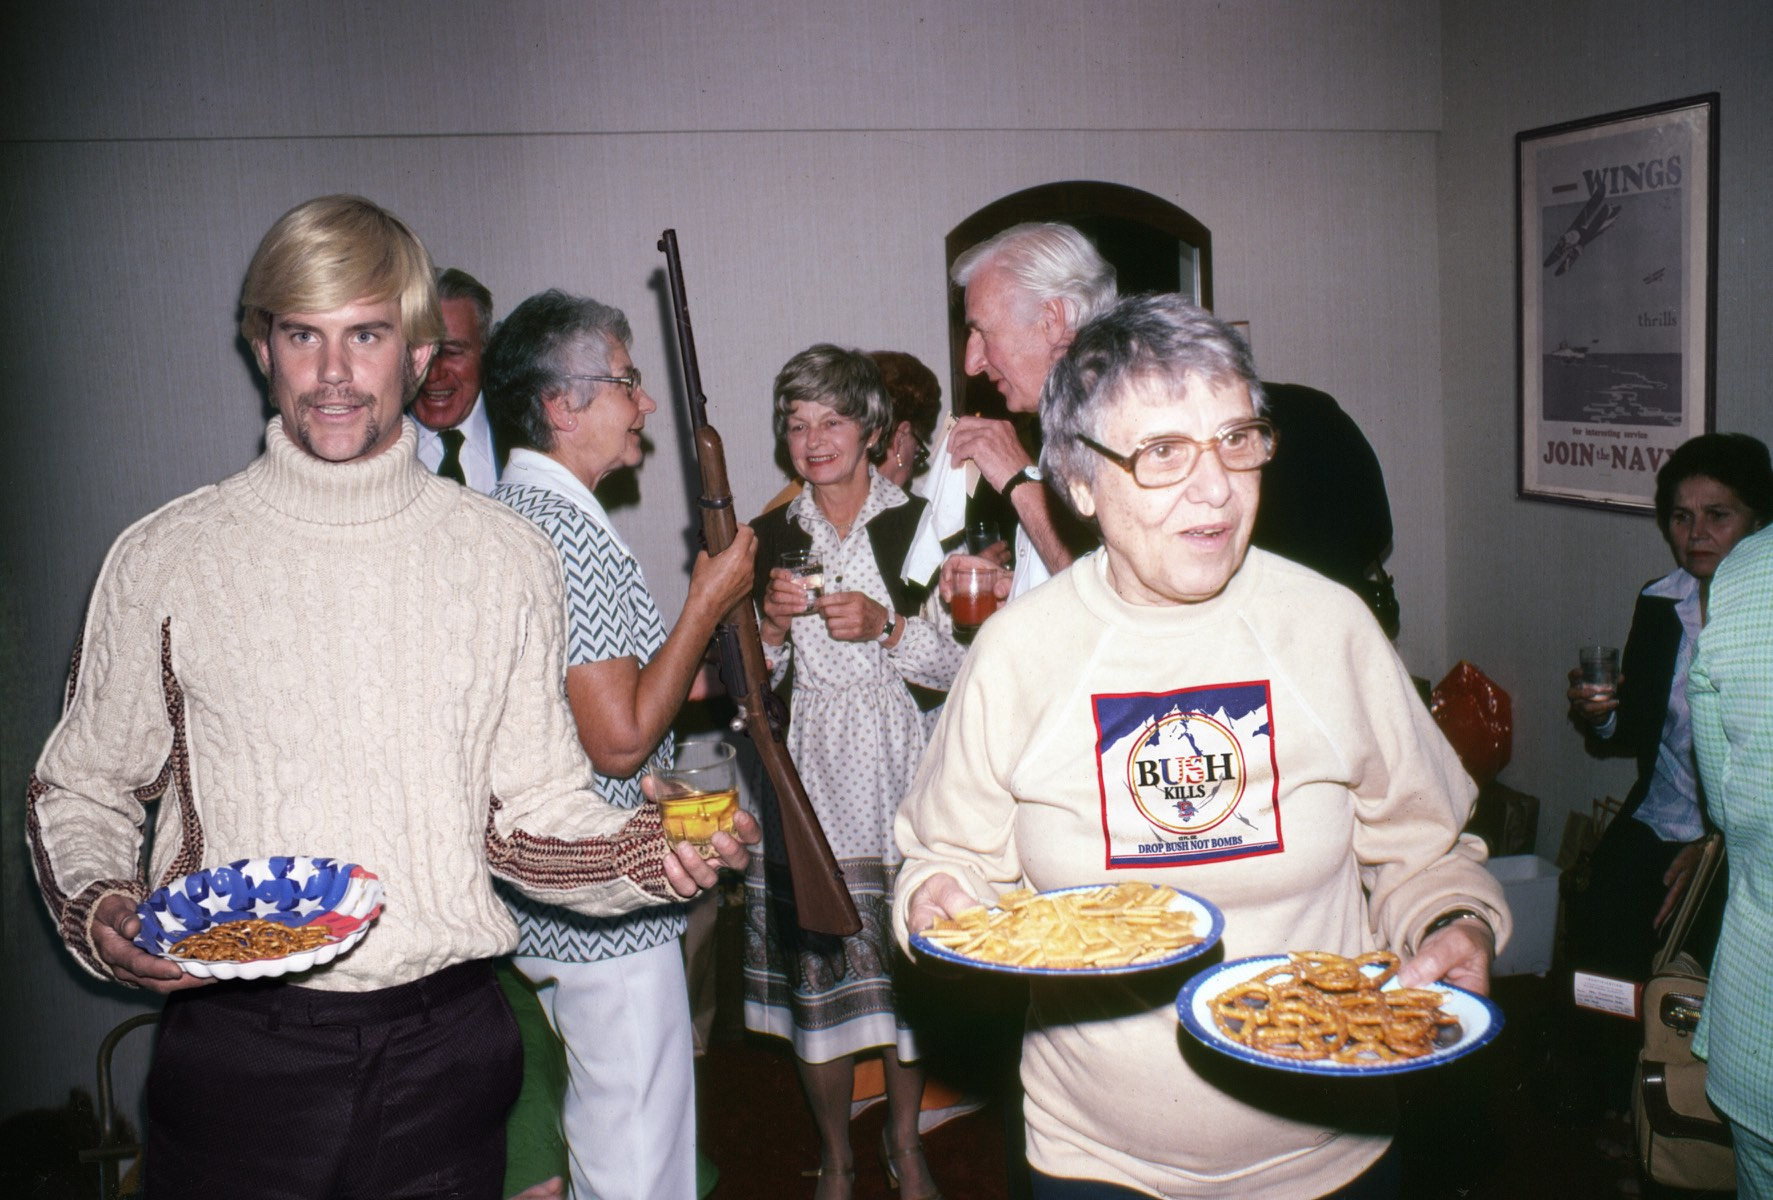 American family party